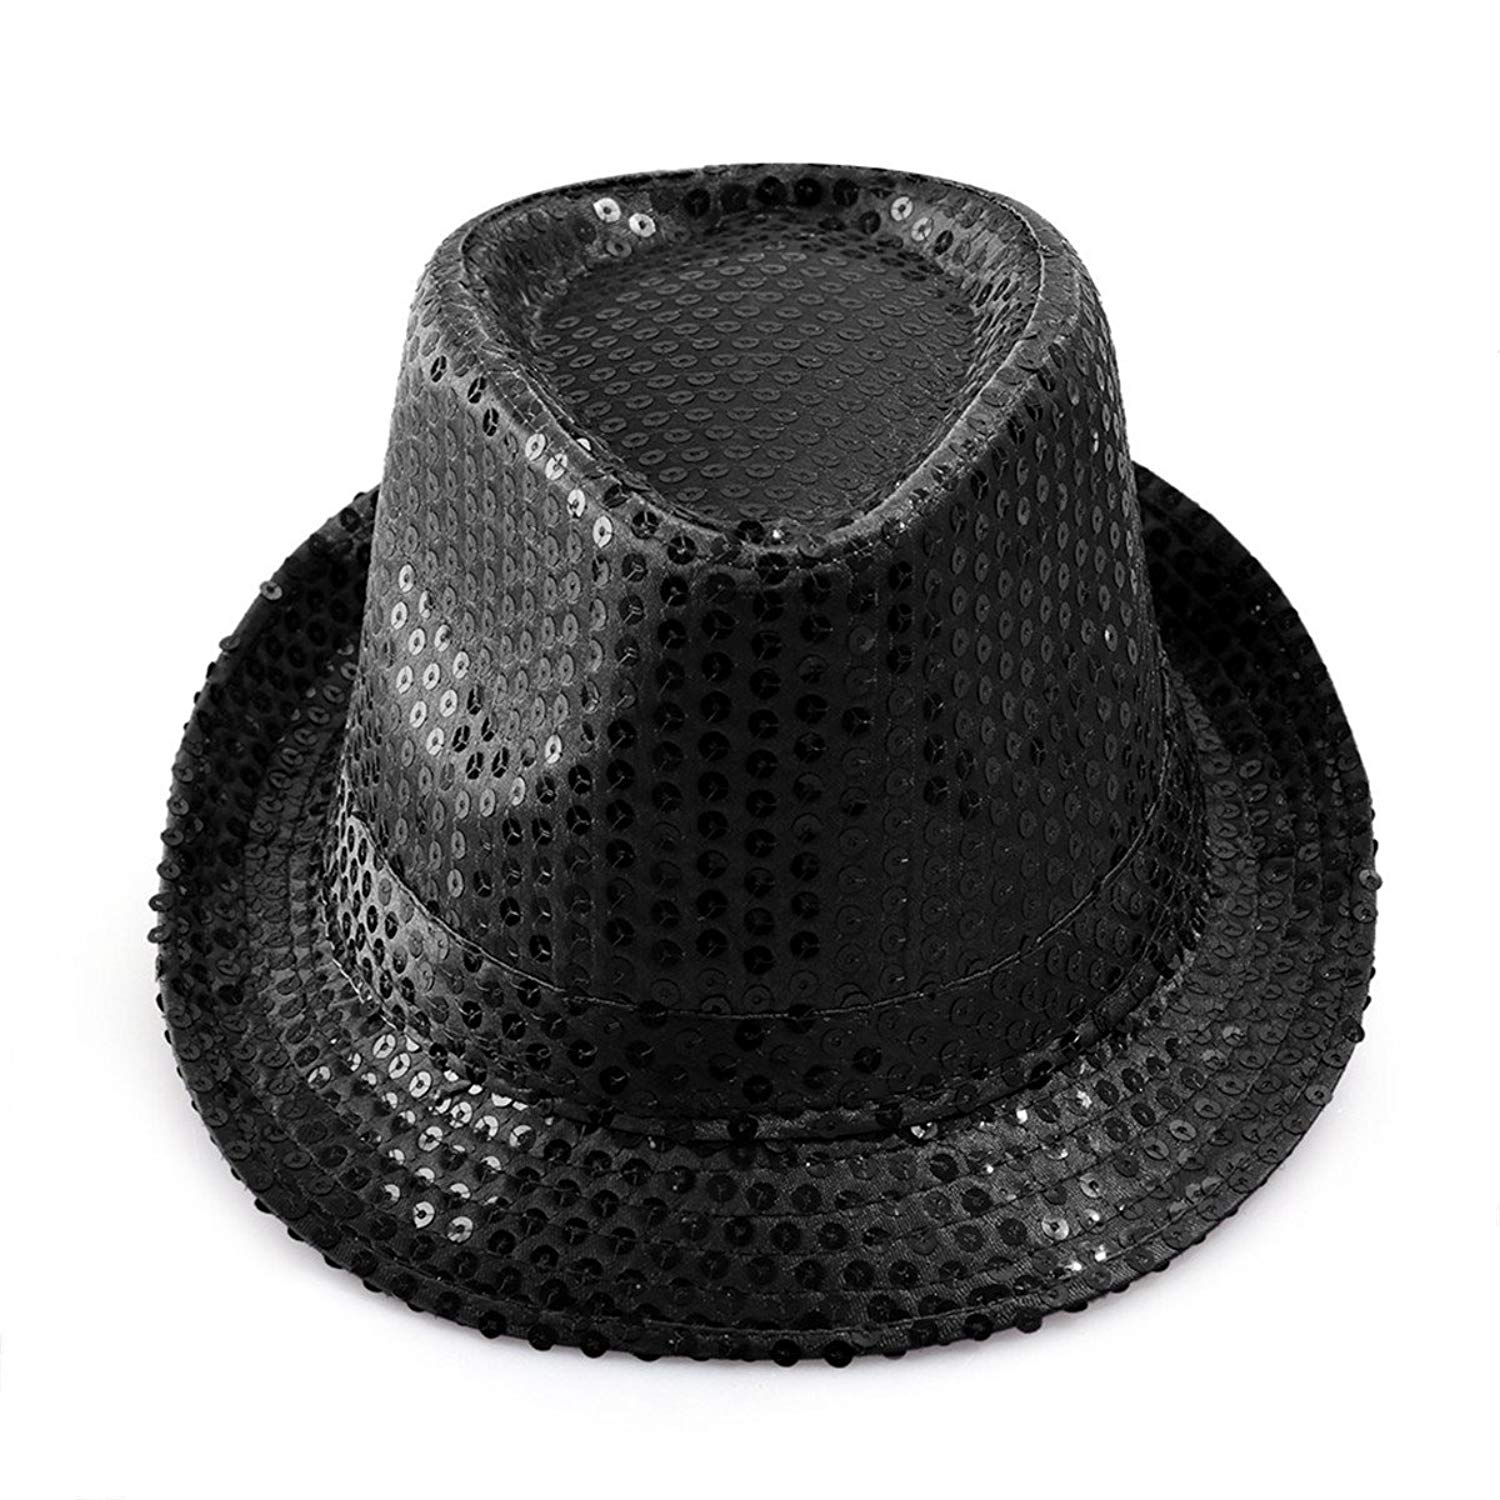 dc046d58bb0f9 Get Quotations · LKXHarleya Adult Sequins Fedora Jazz Hats Glitter  Paillette Costumes Party Dance Cap